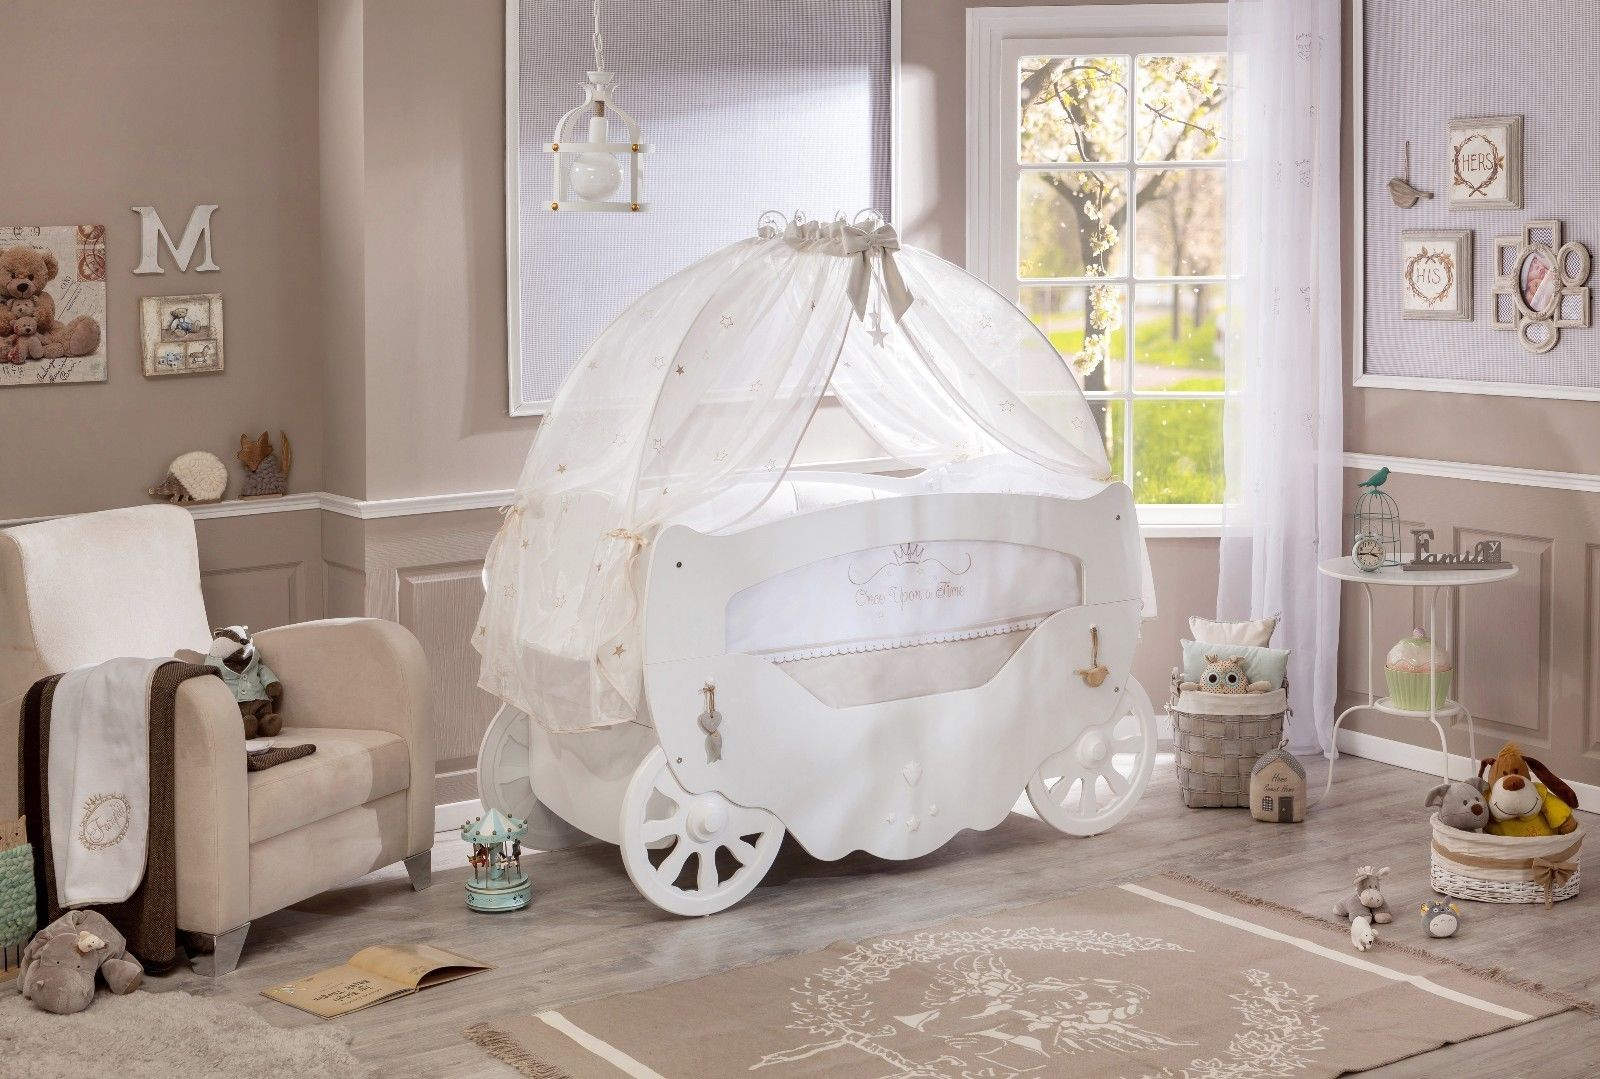 White Fairy Baby Cot Bed With Canopy. Return to Previous Page. lightbox & White Fairy Baby Cot Bed With Canopy | Majestic Furnishings